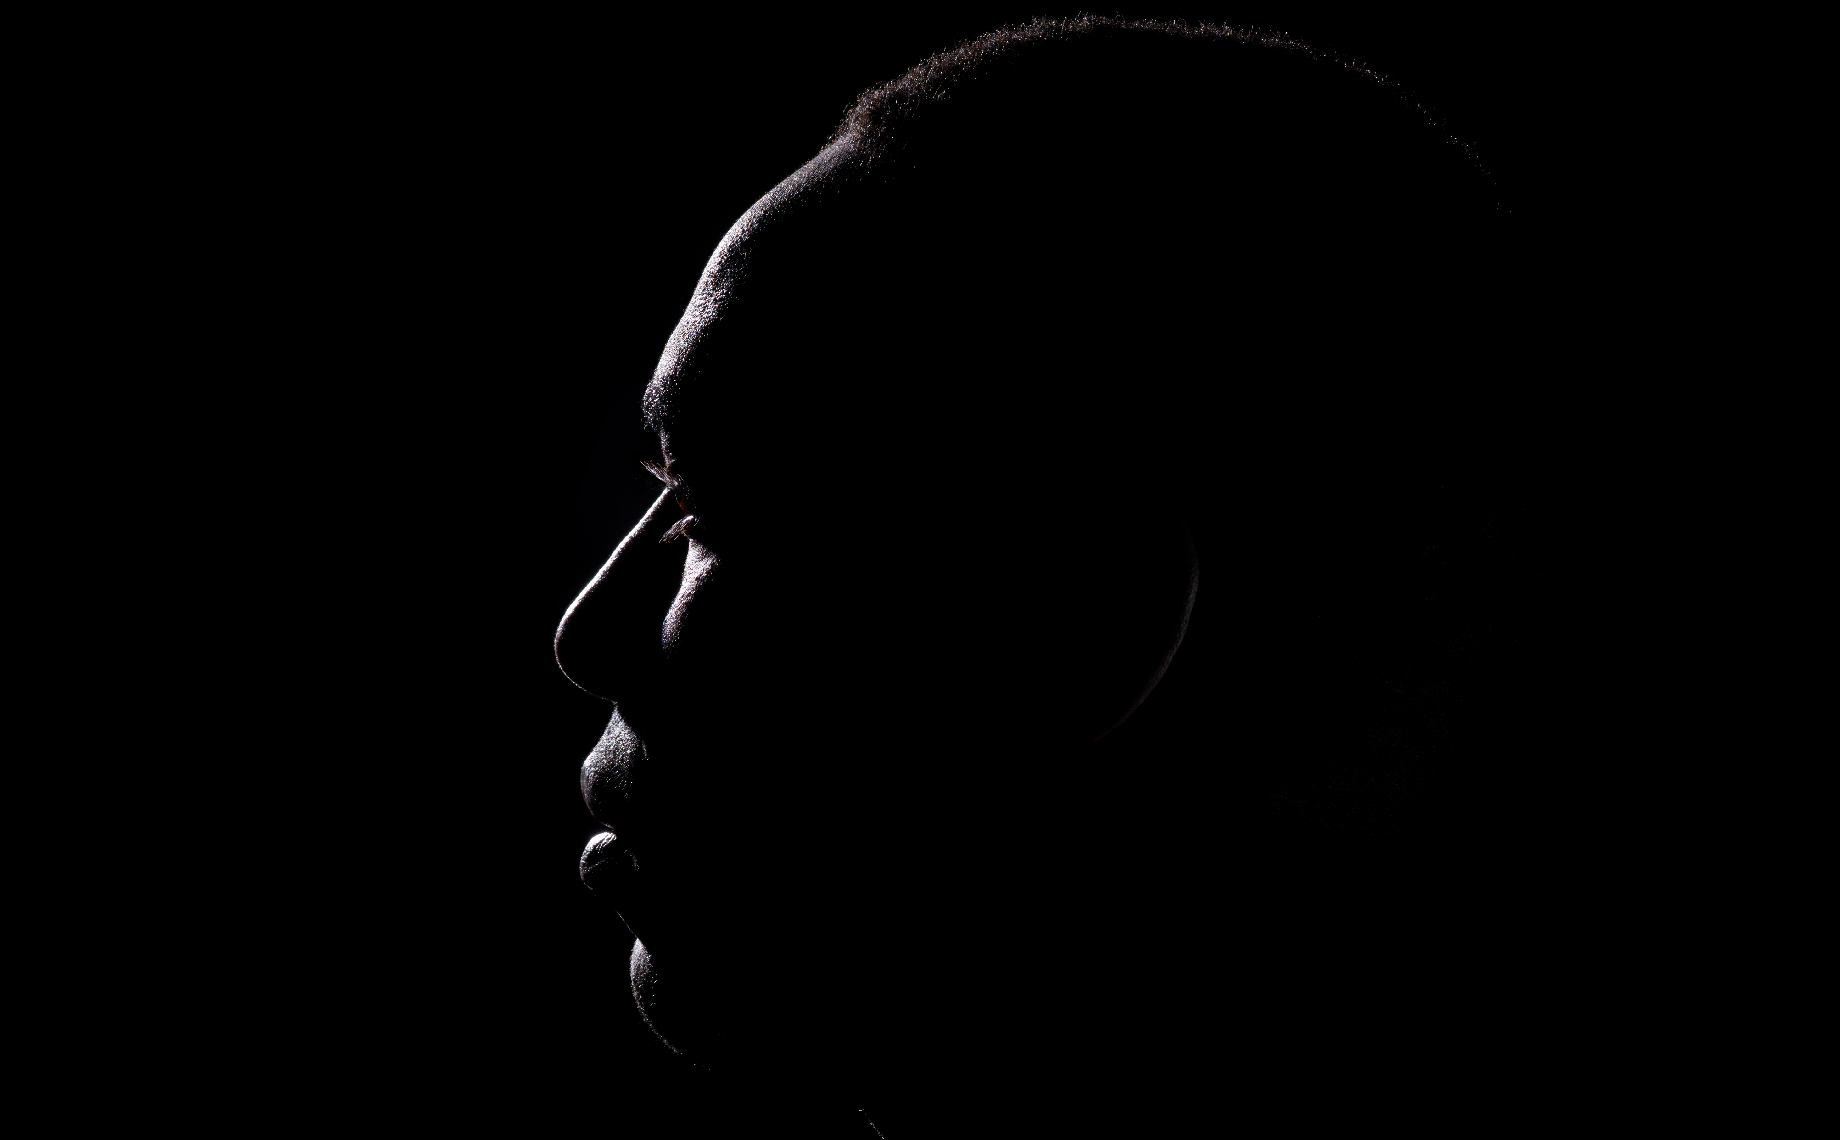 Moody Editorial Portrait of Black Man 10554-Bless-Silhouette-F